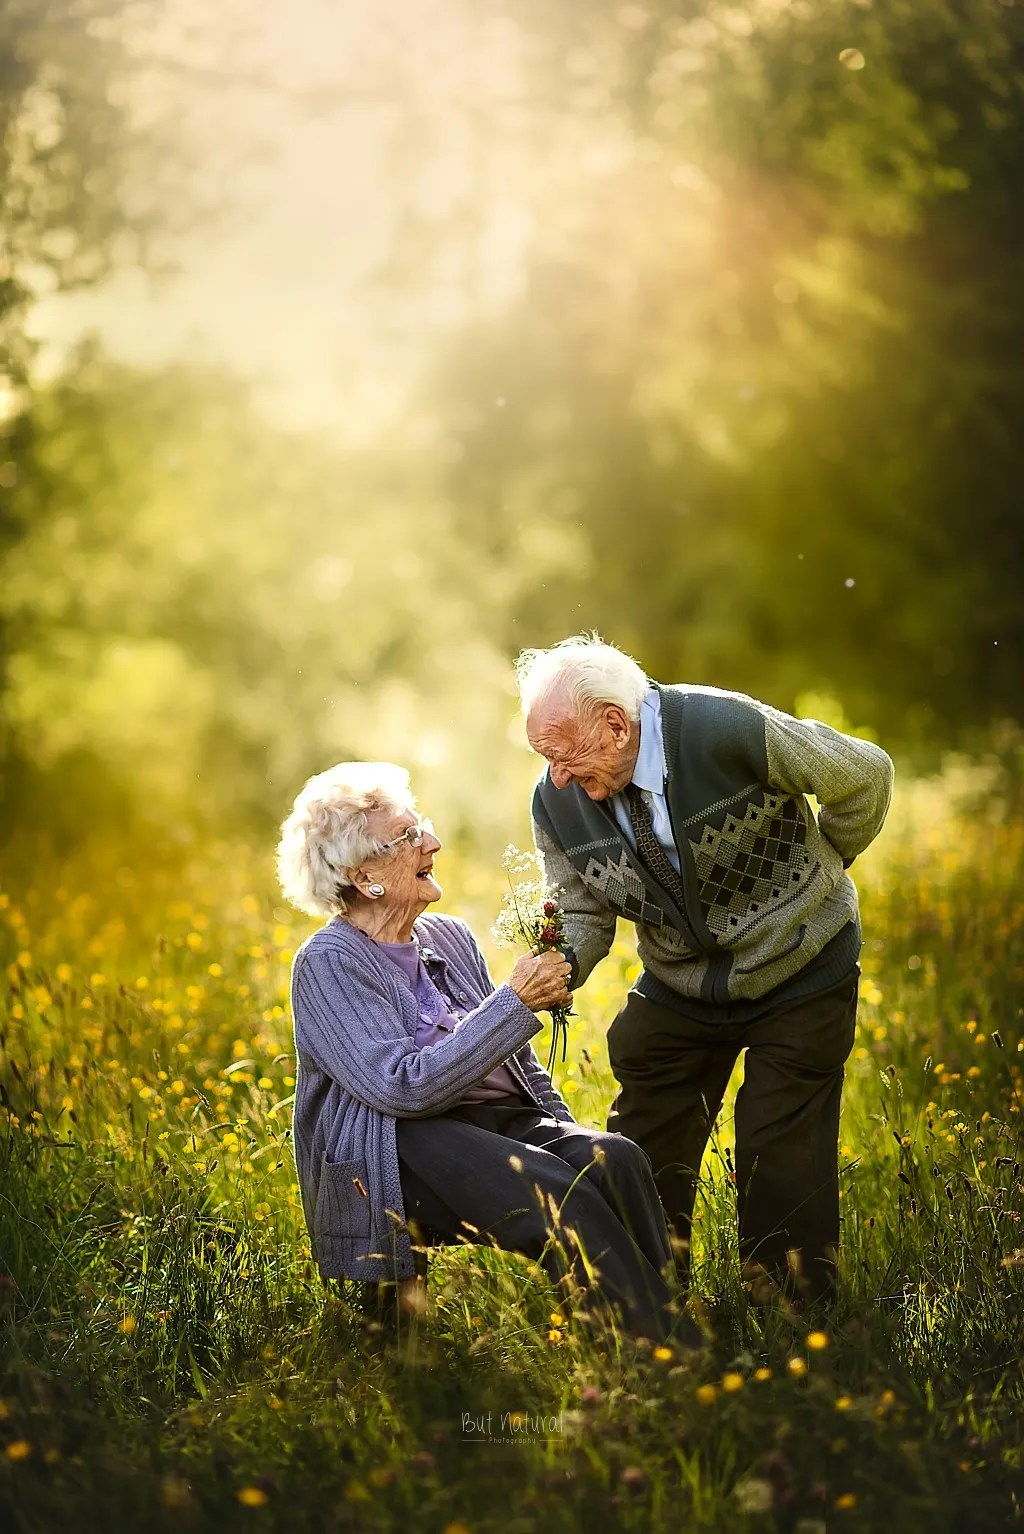 growing old together - long term love - lasting marriage - Sugata Setia - But Natural Photography